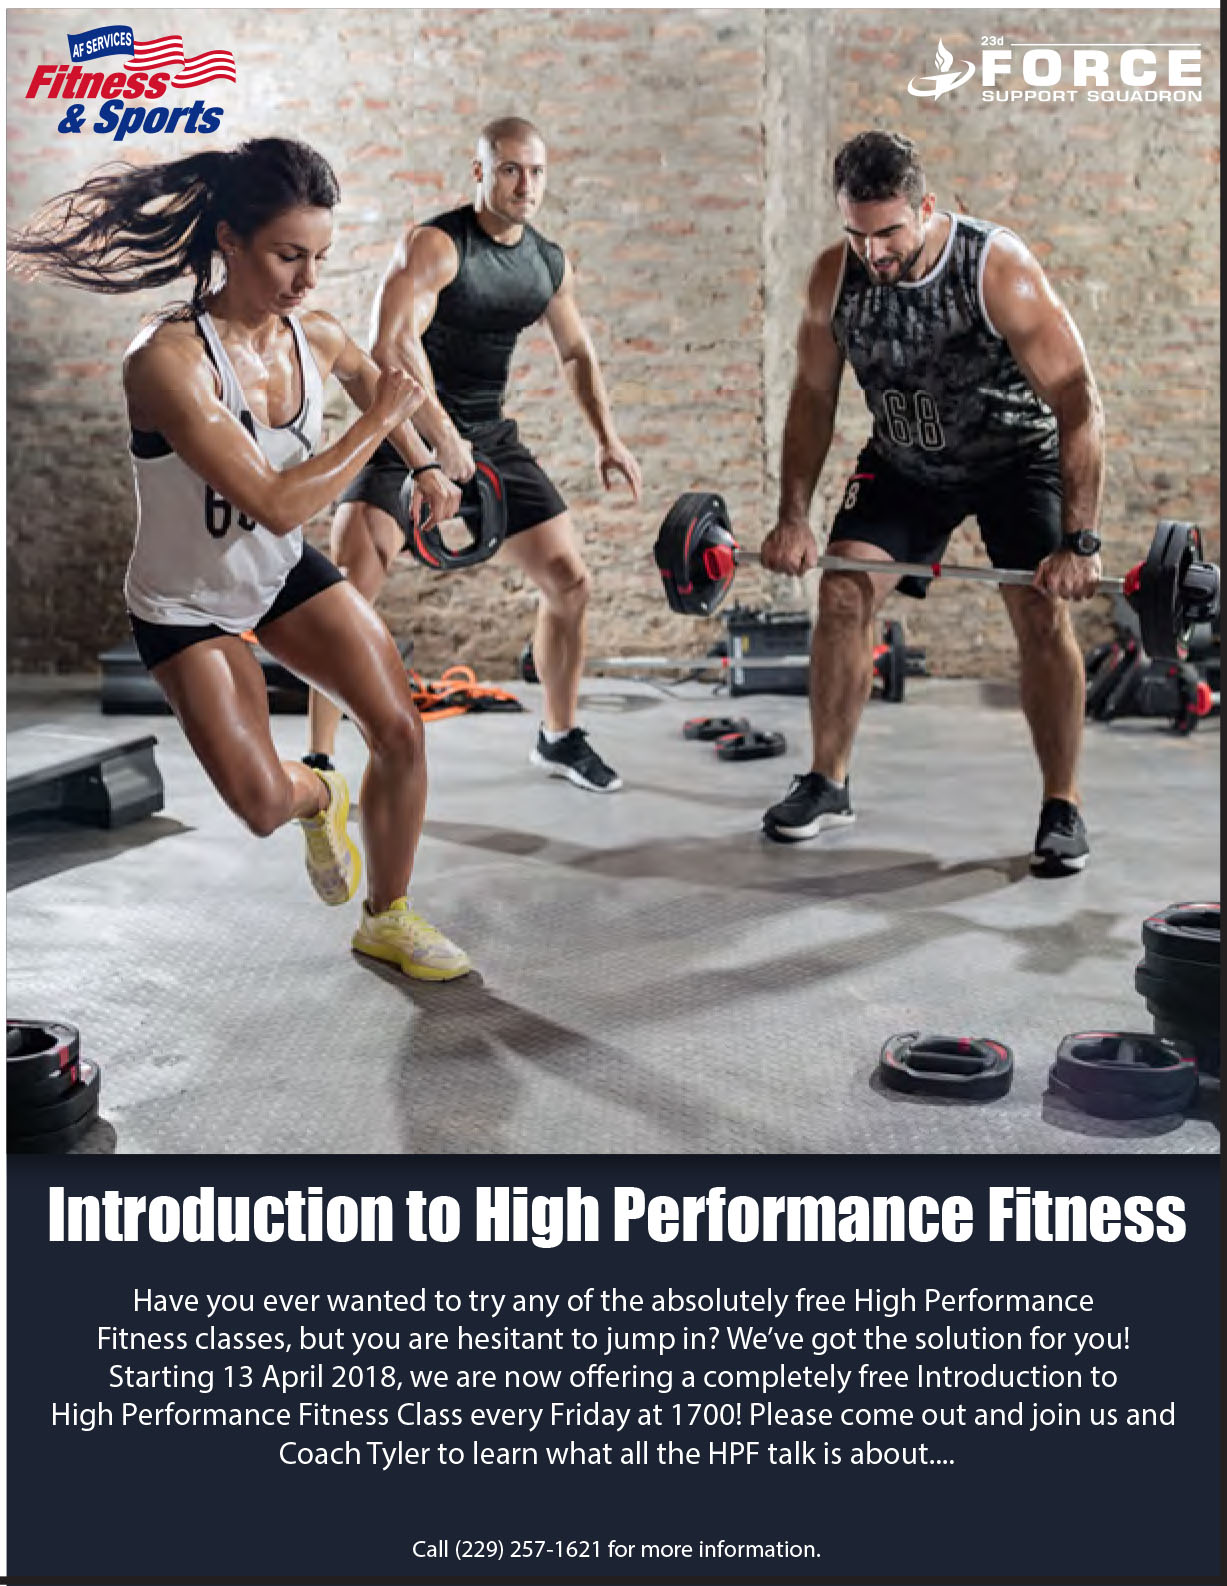 Intro to High Performance Fitness @ Fitness Center: The Box